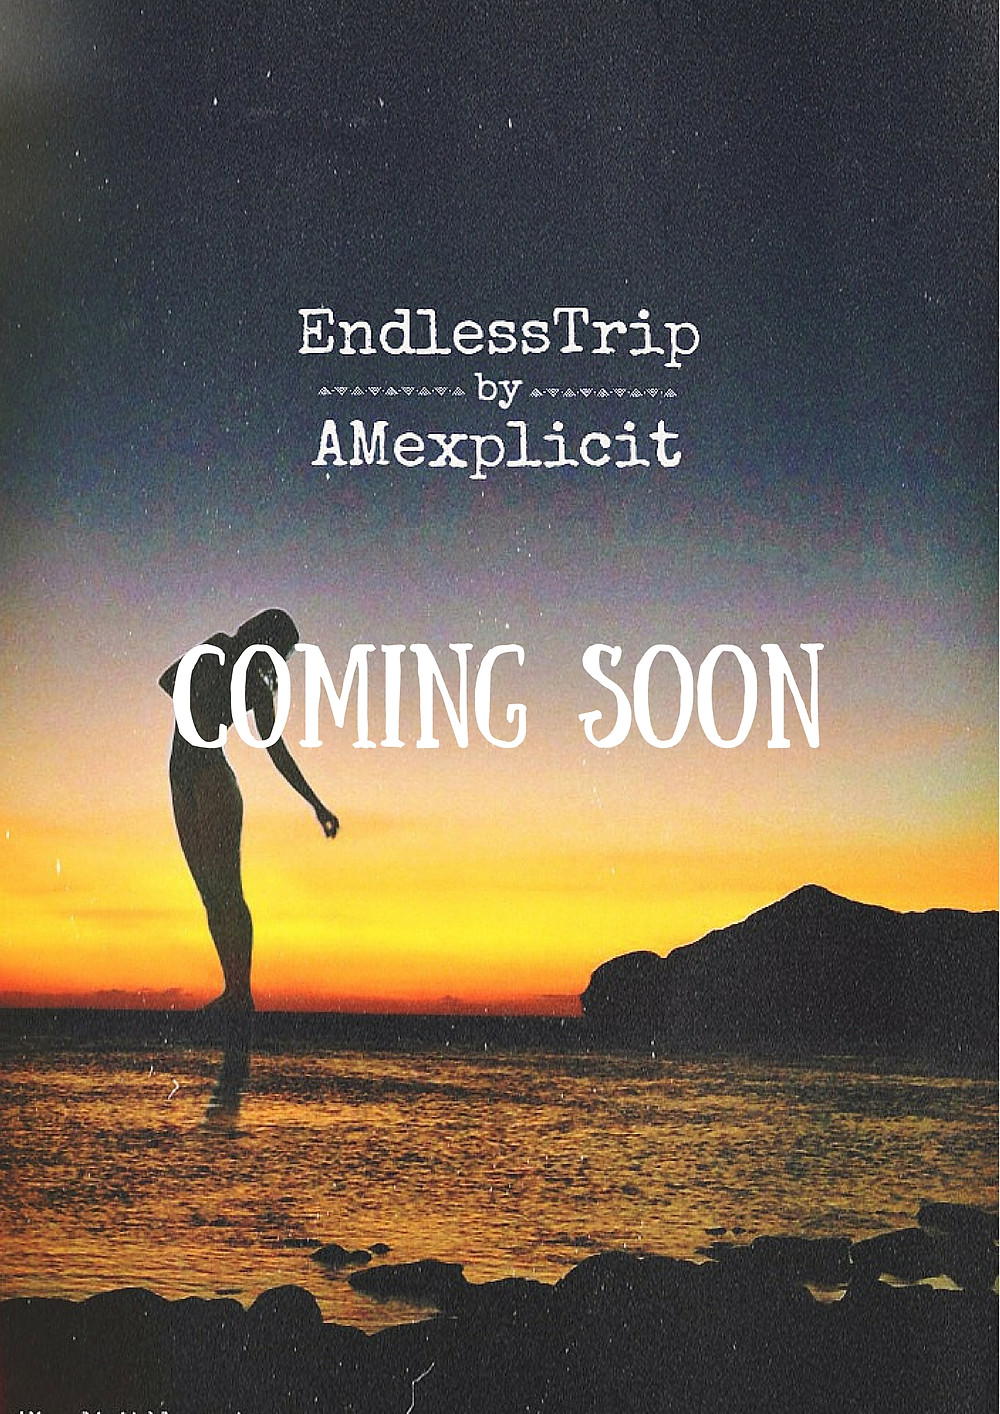 STAY TUNED TO THE ENDLESS TRIP